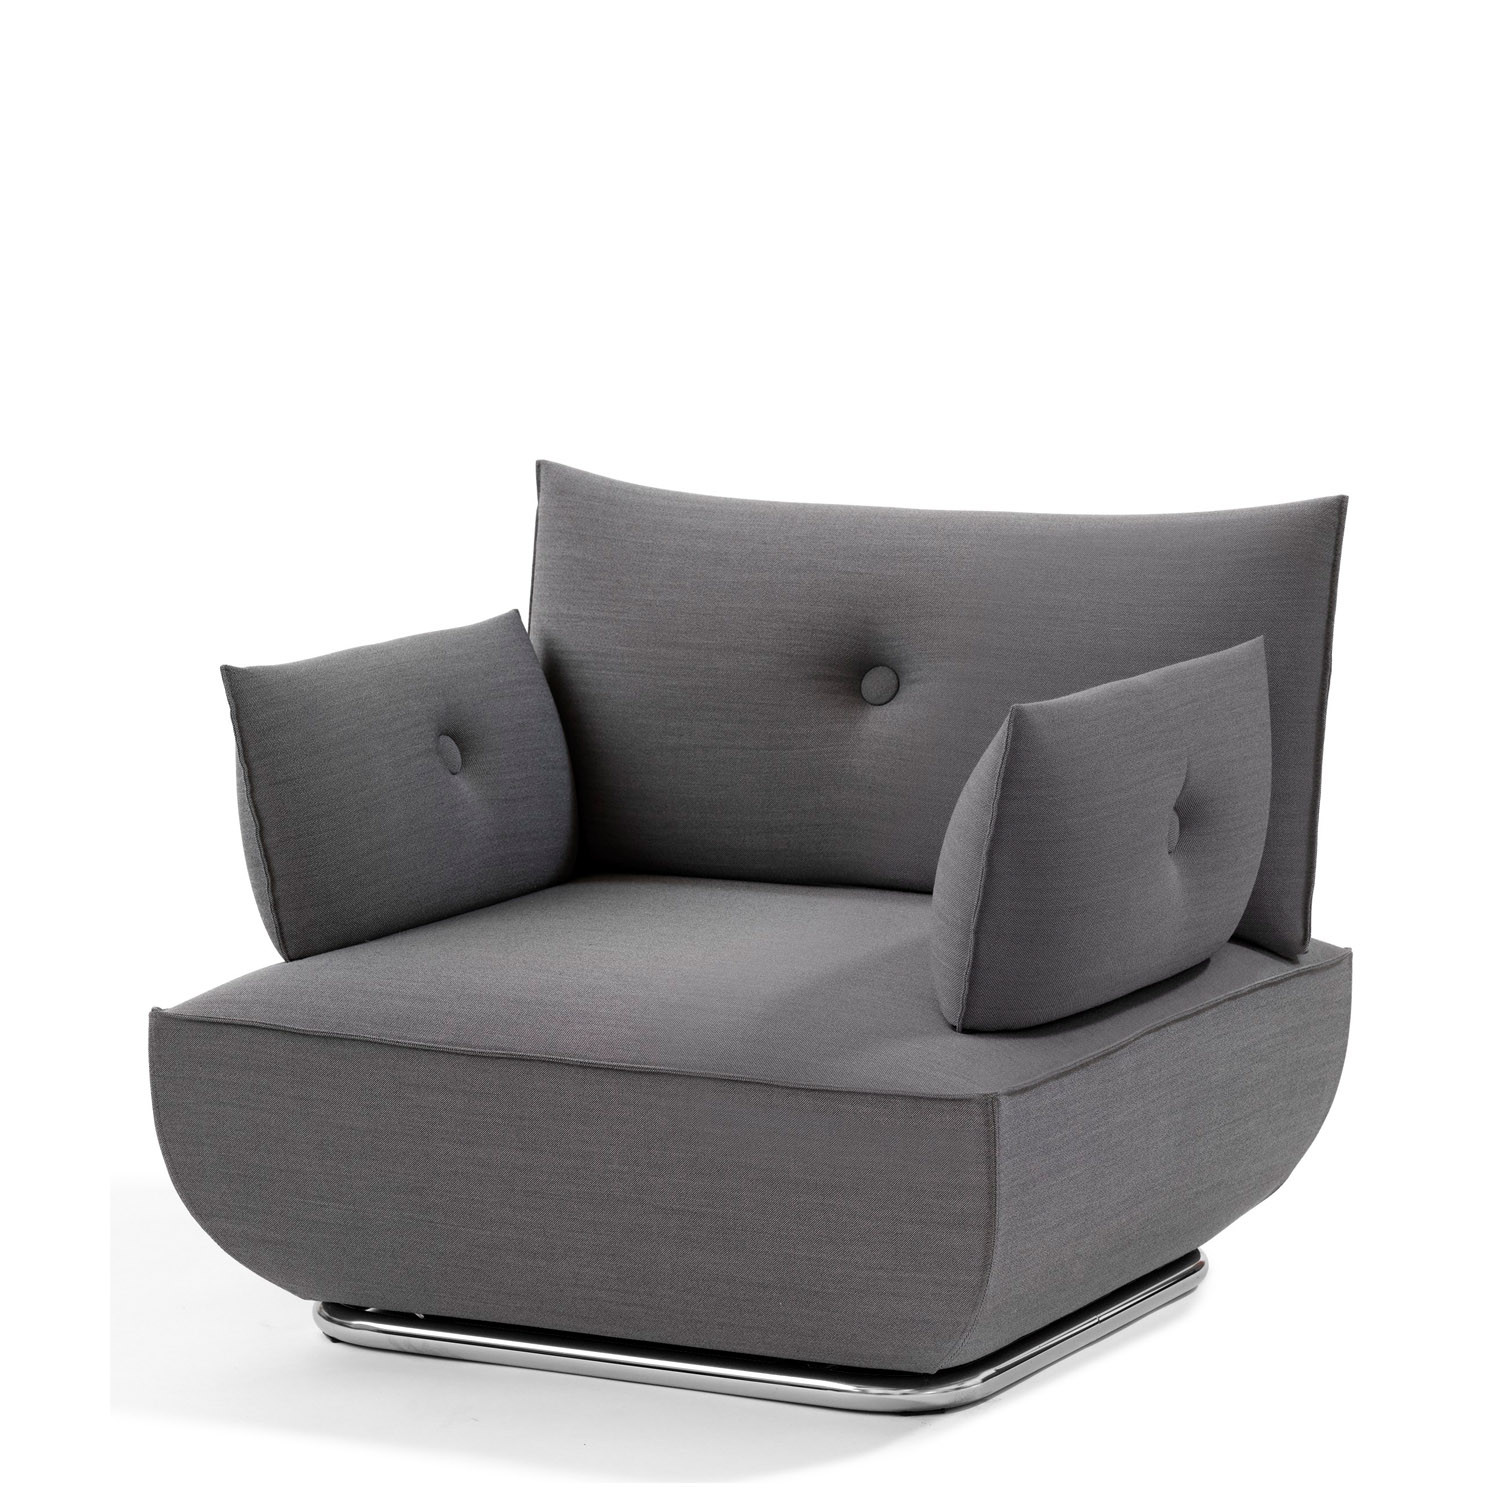 Dunder Chair S601